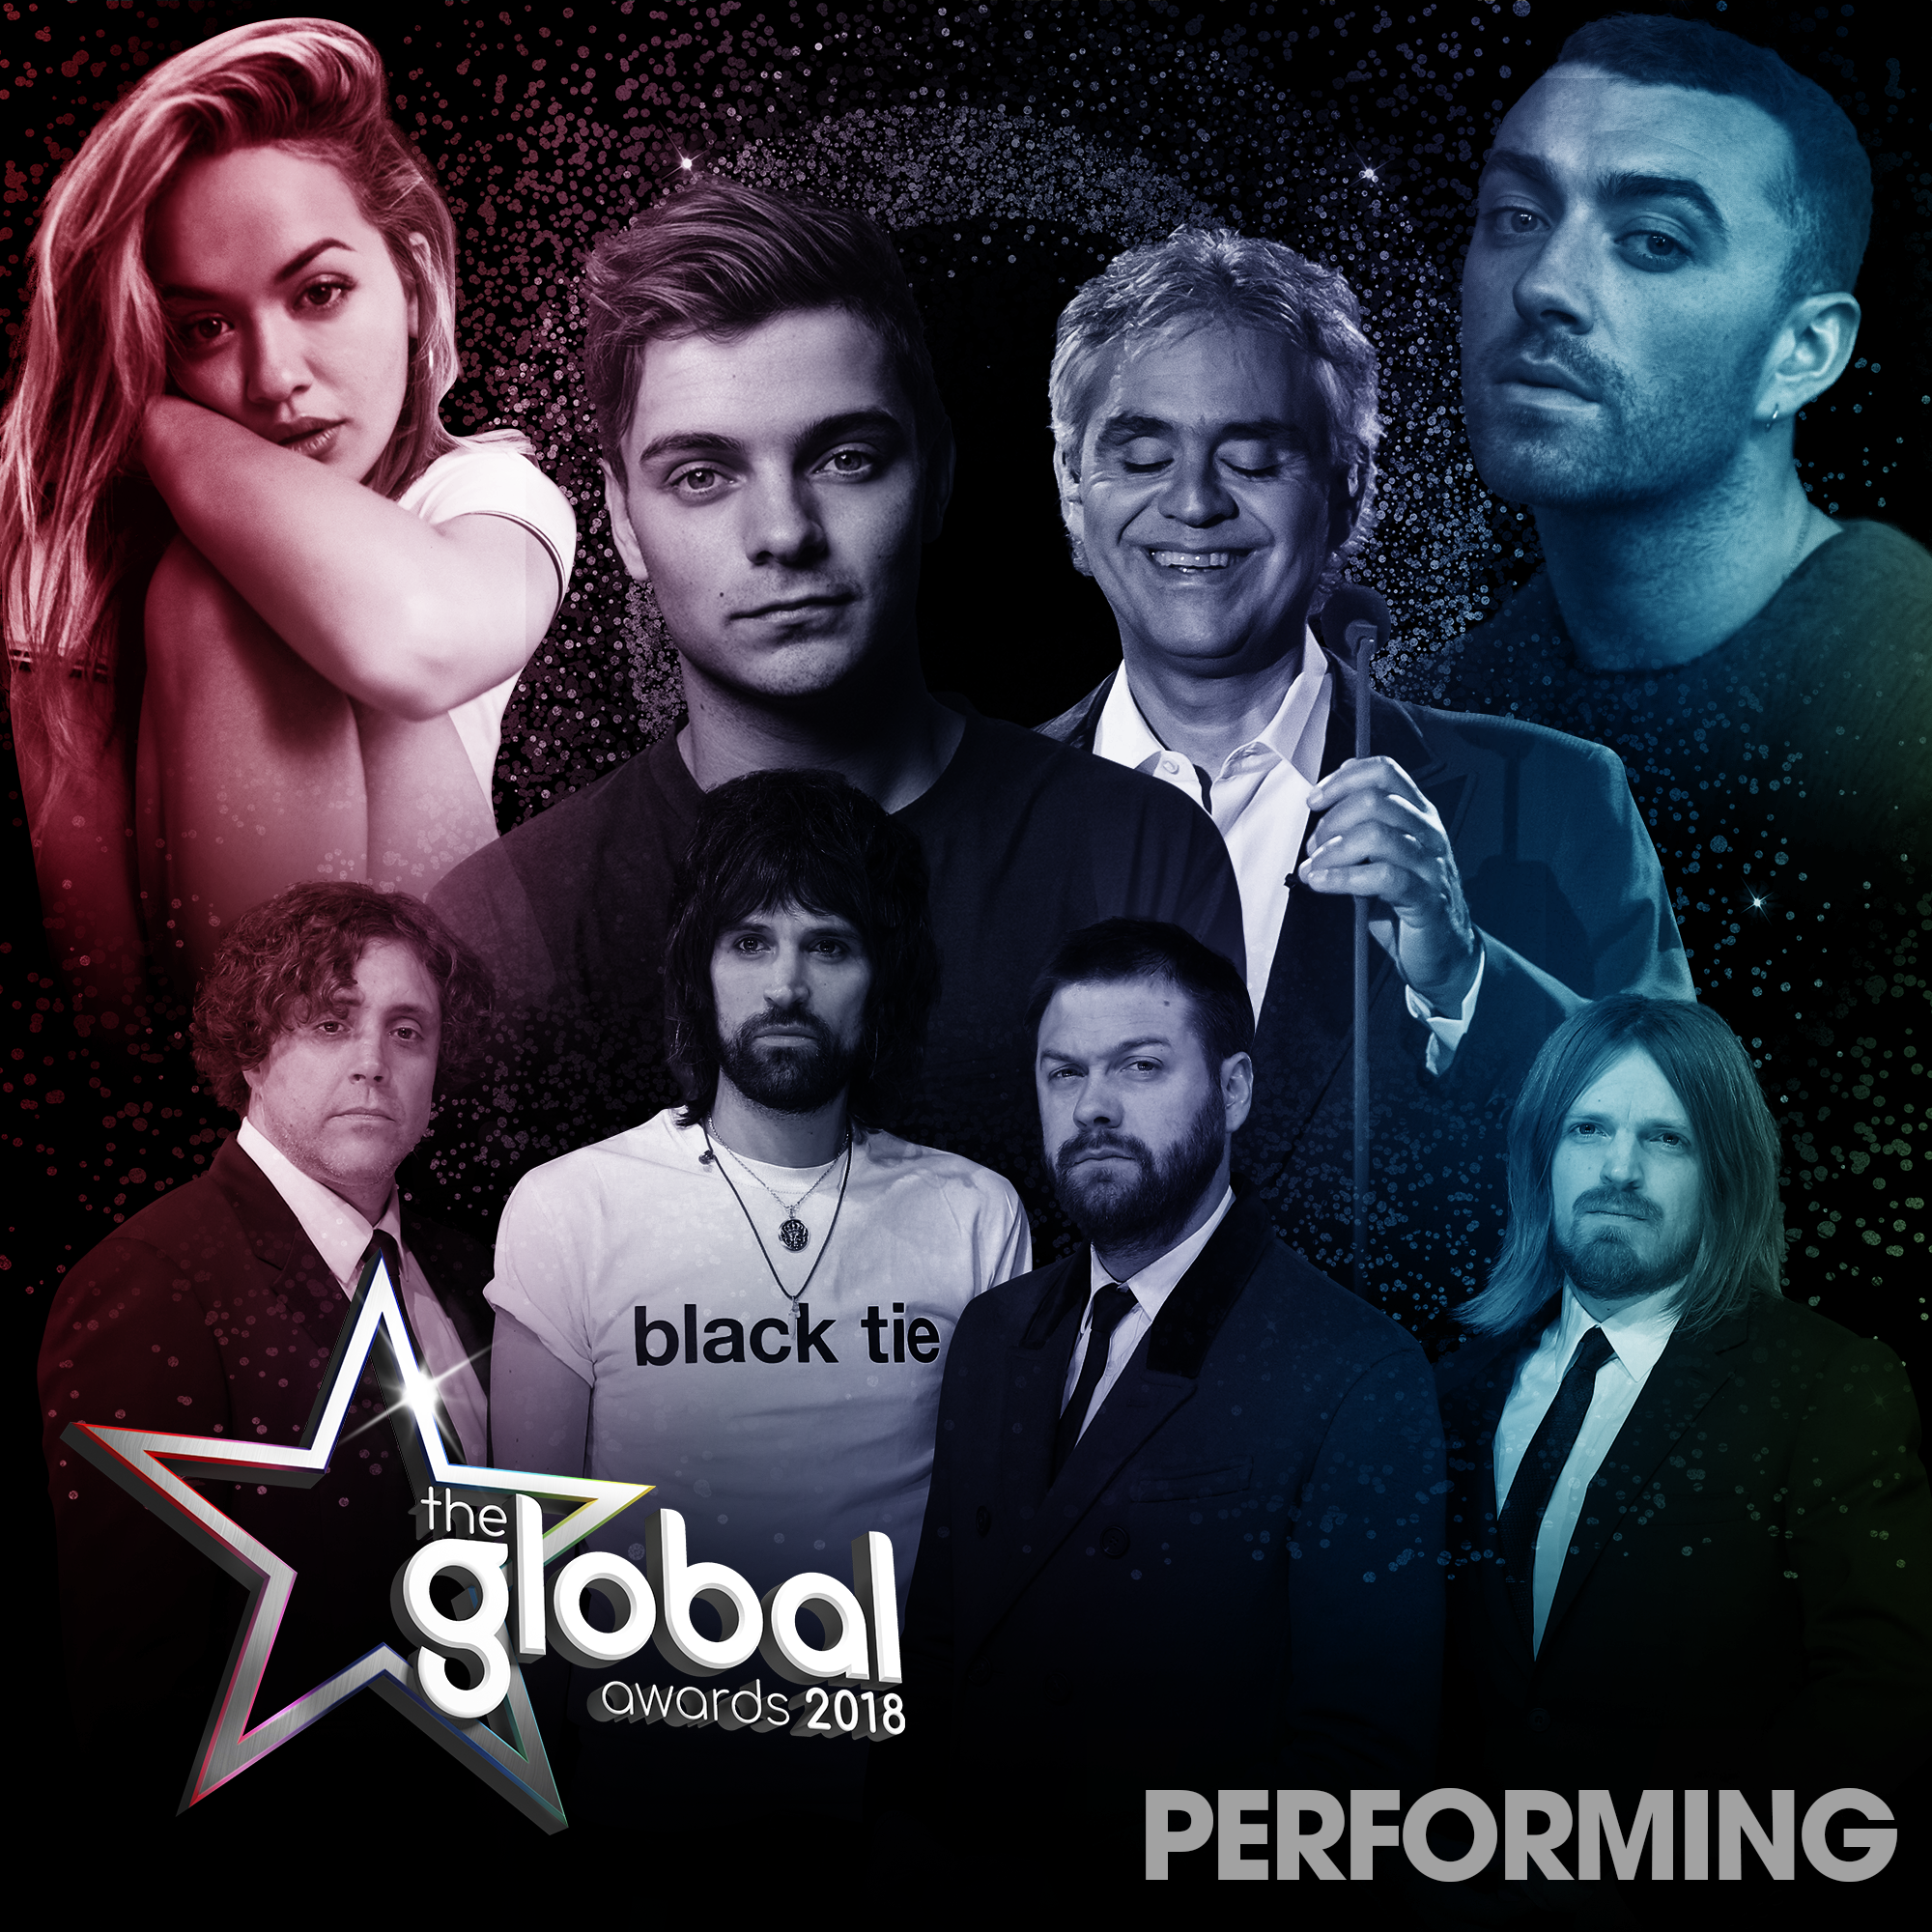 Global Awards 2018 Performers